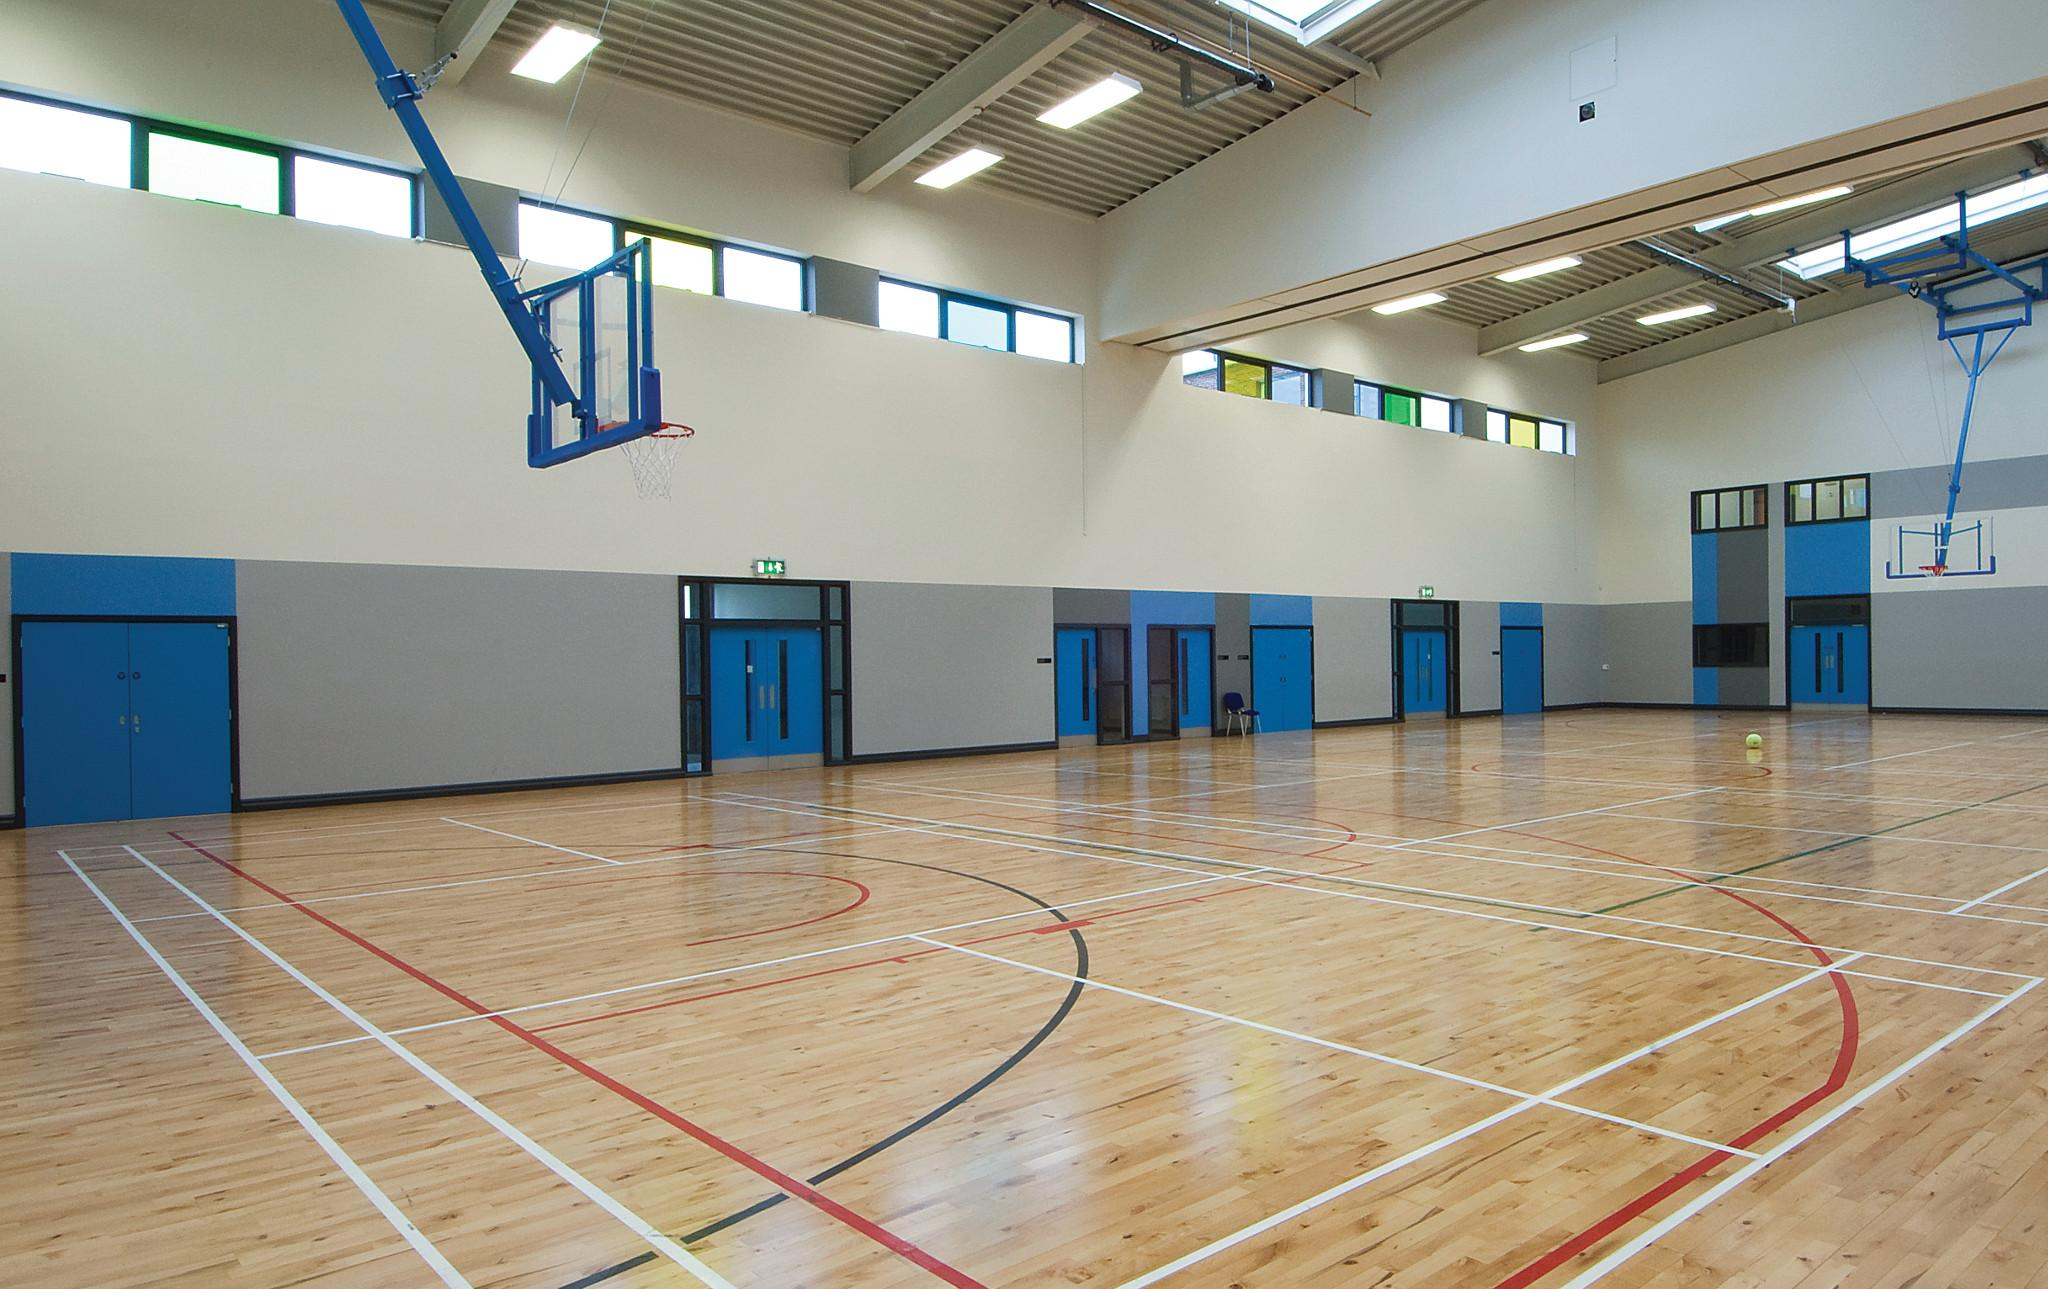 Paintable Aspiro doors in a school gym